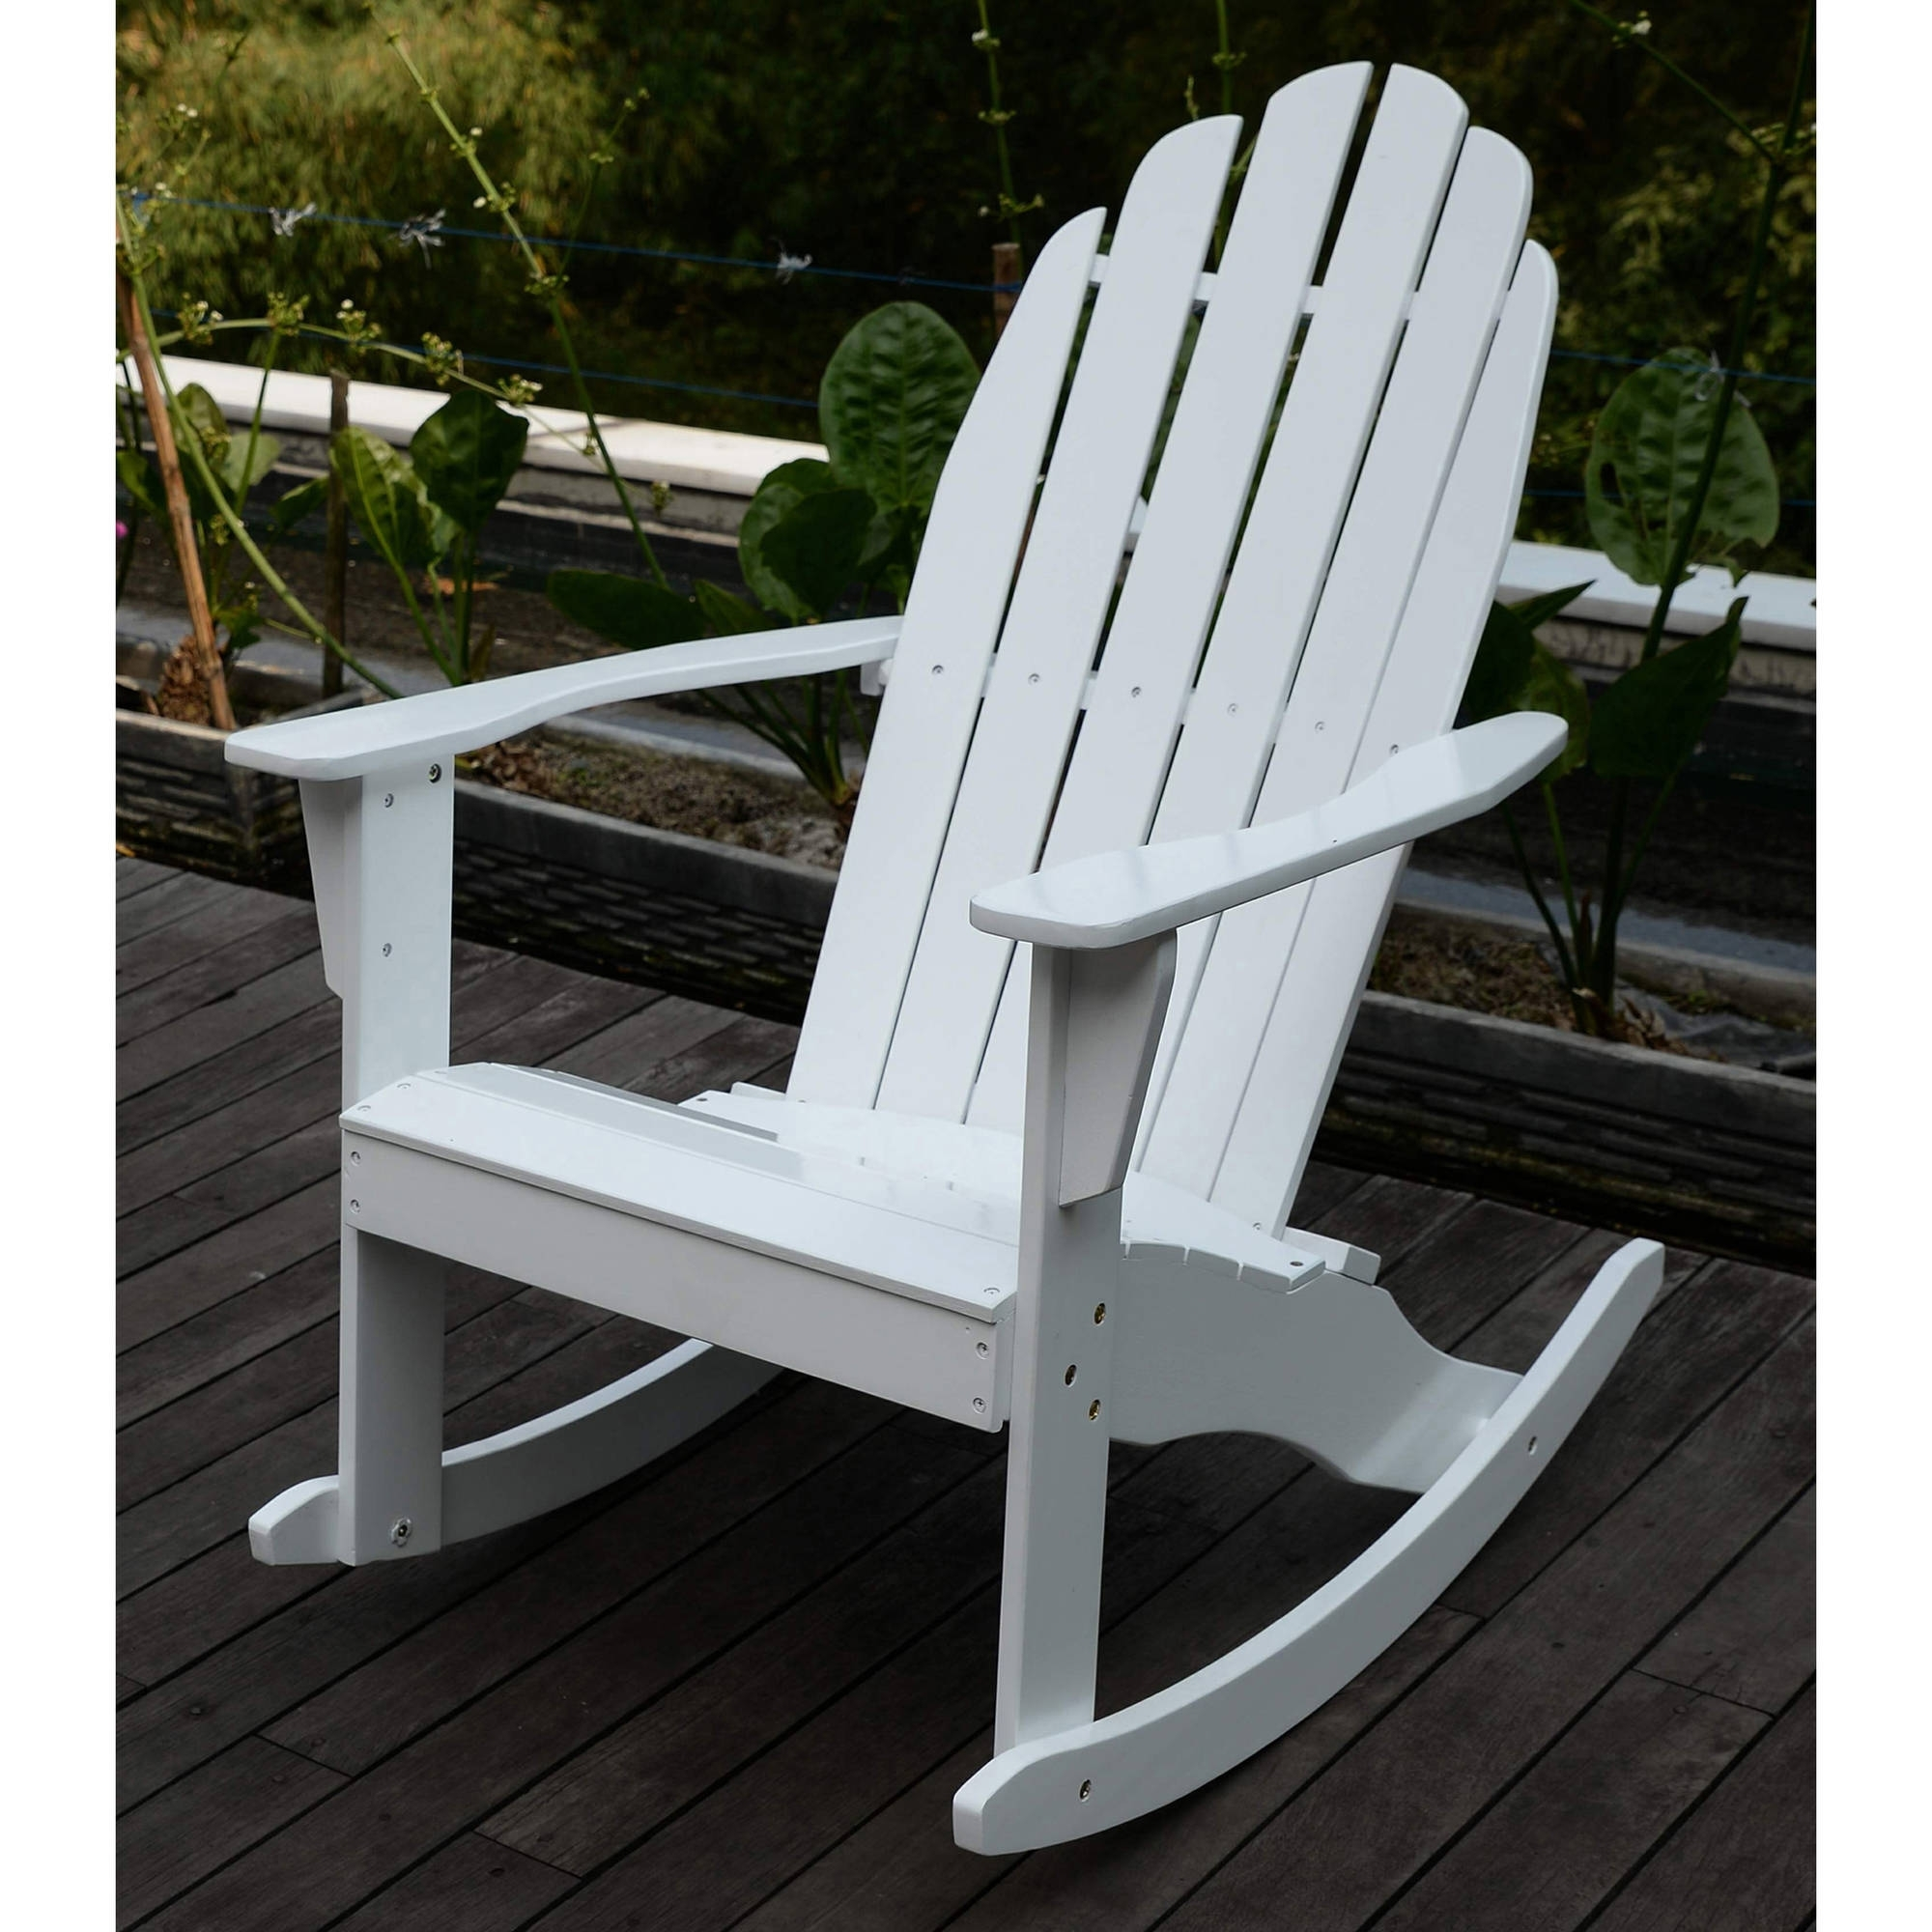 Rocking Chairs At Walmart Within Trendy Adirondack Rocking Chair, White – Walmart (View 4 of 15)